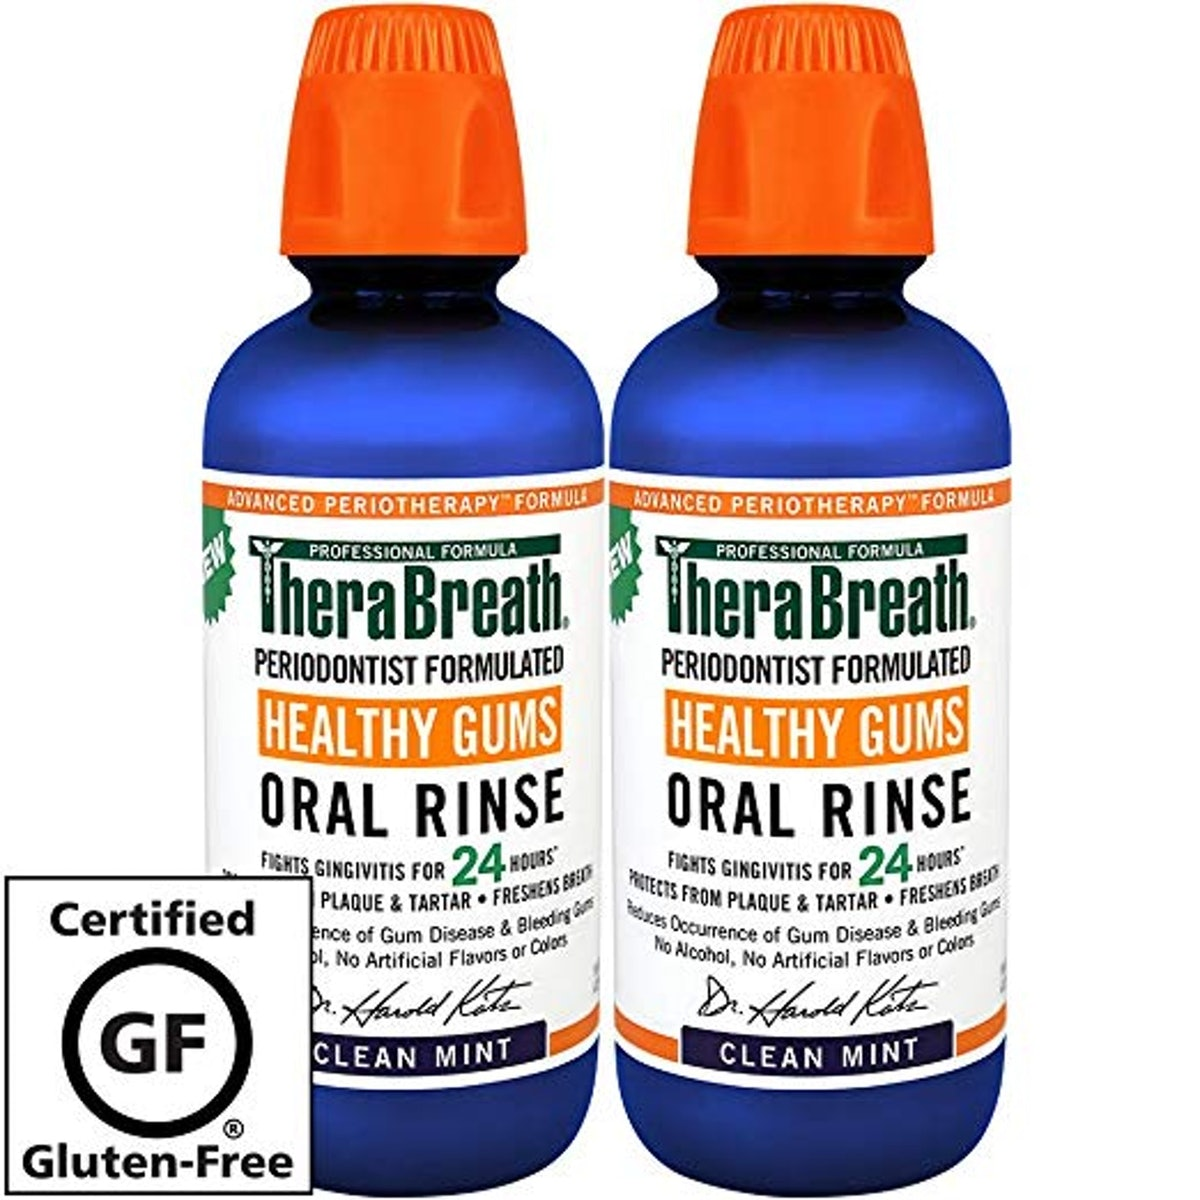 TheraBreath 24-Hour Periodontist Formulated Oral Rinse (2-Pack)